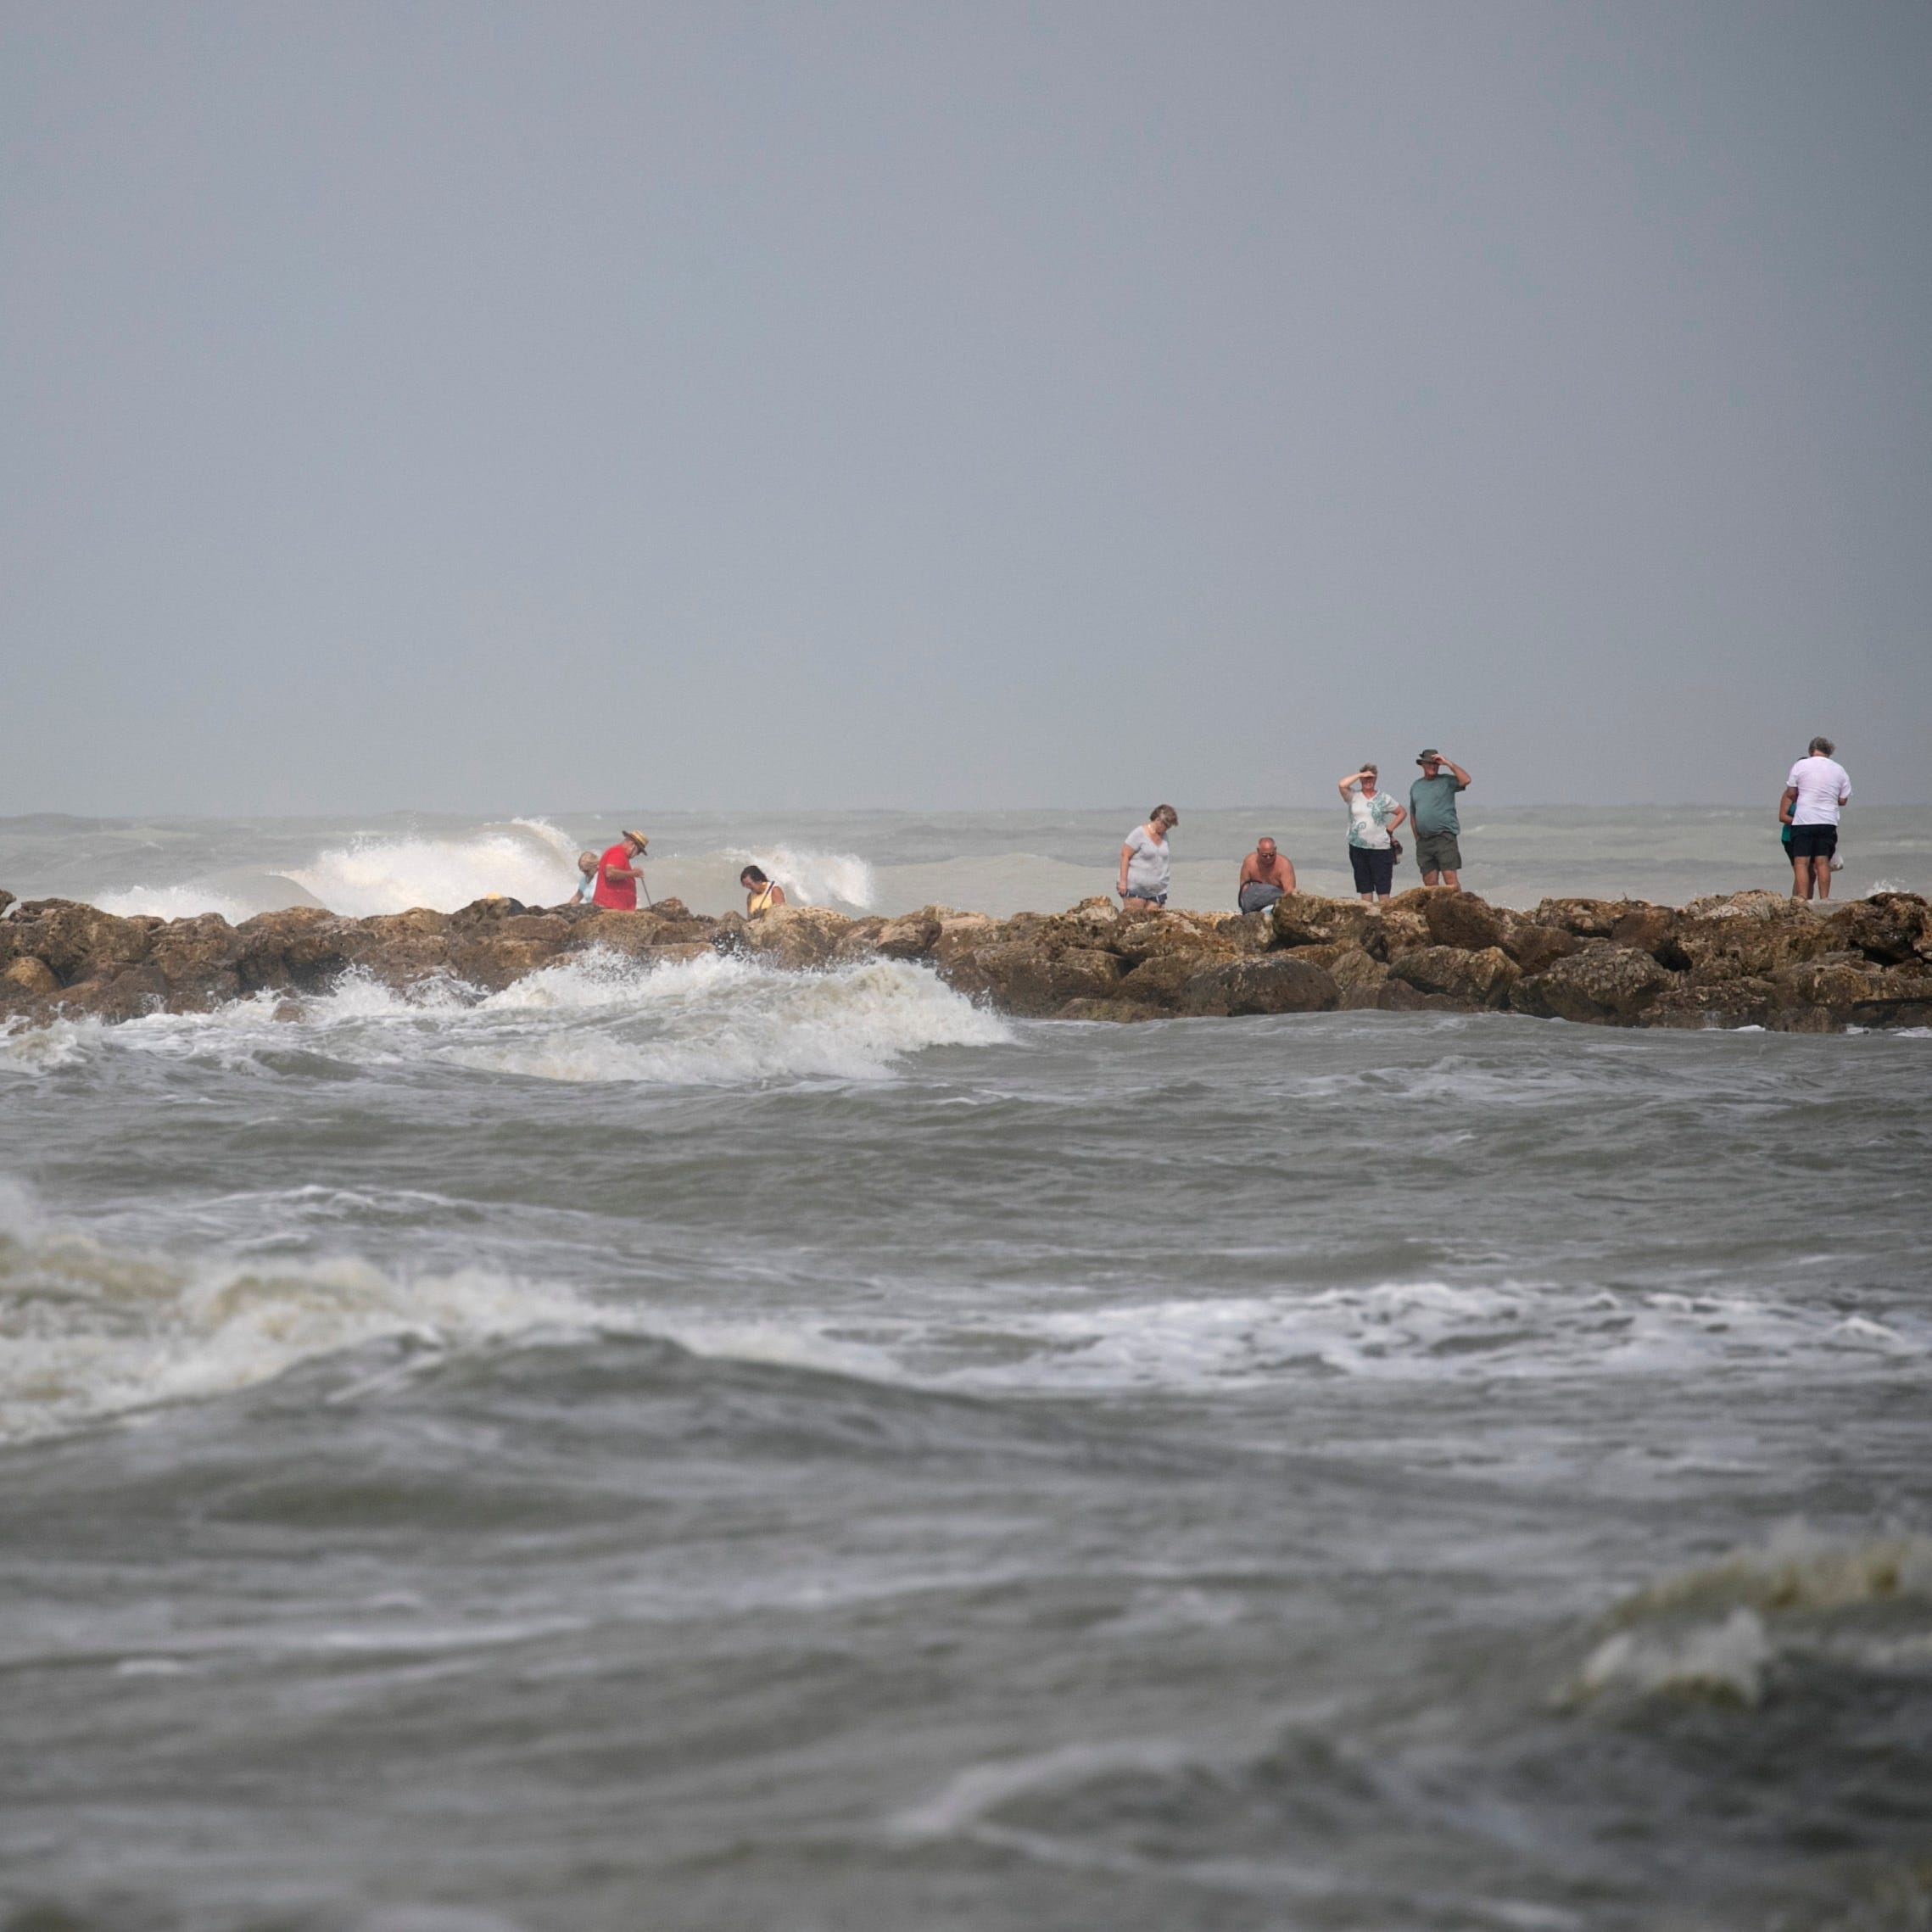 Hurricane Michael: Mississippi deploying to assist